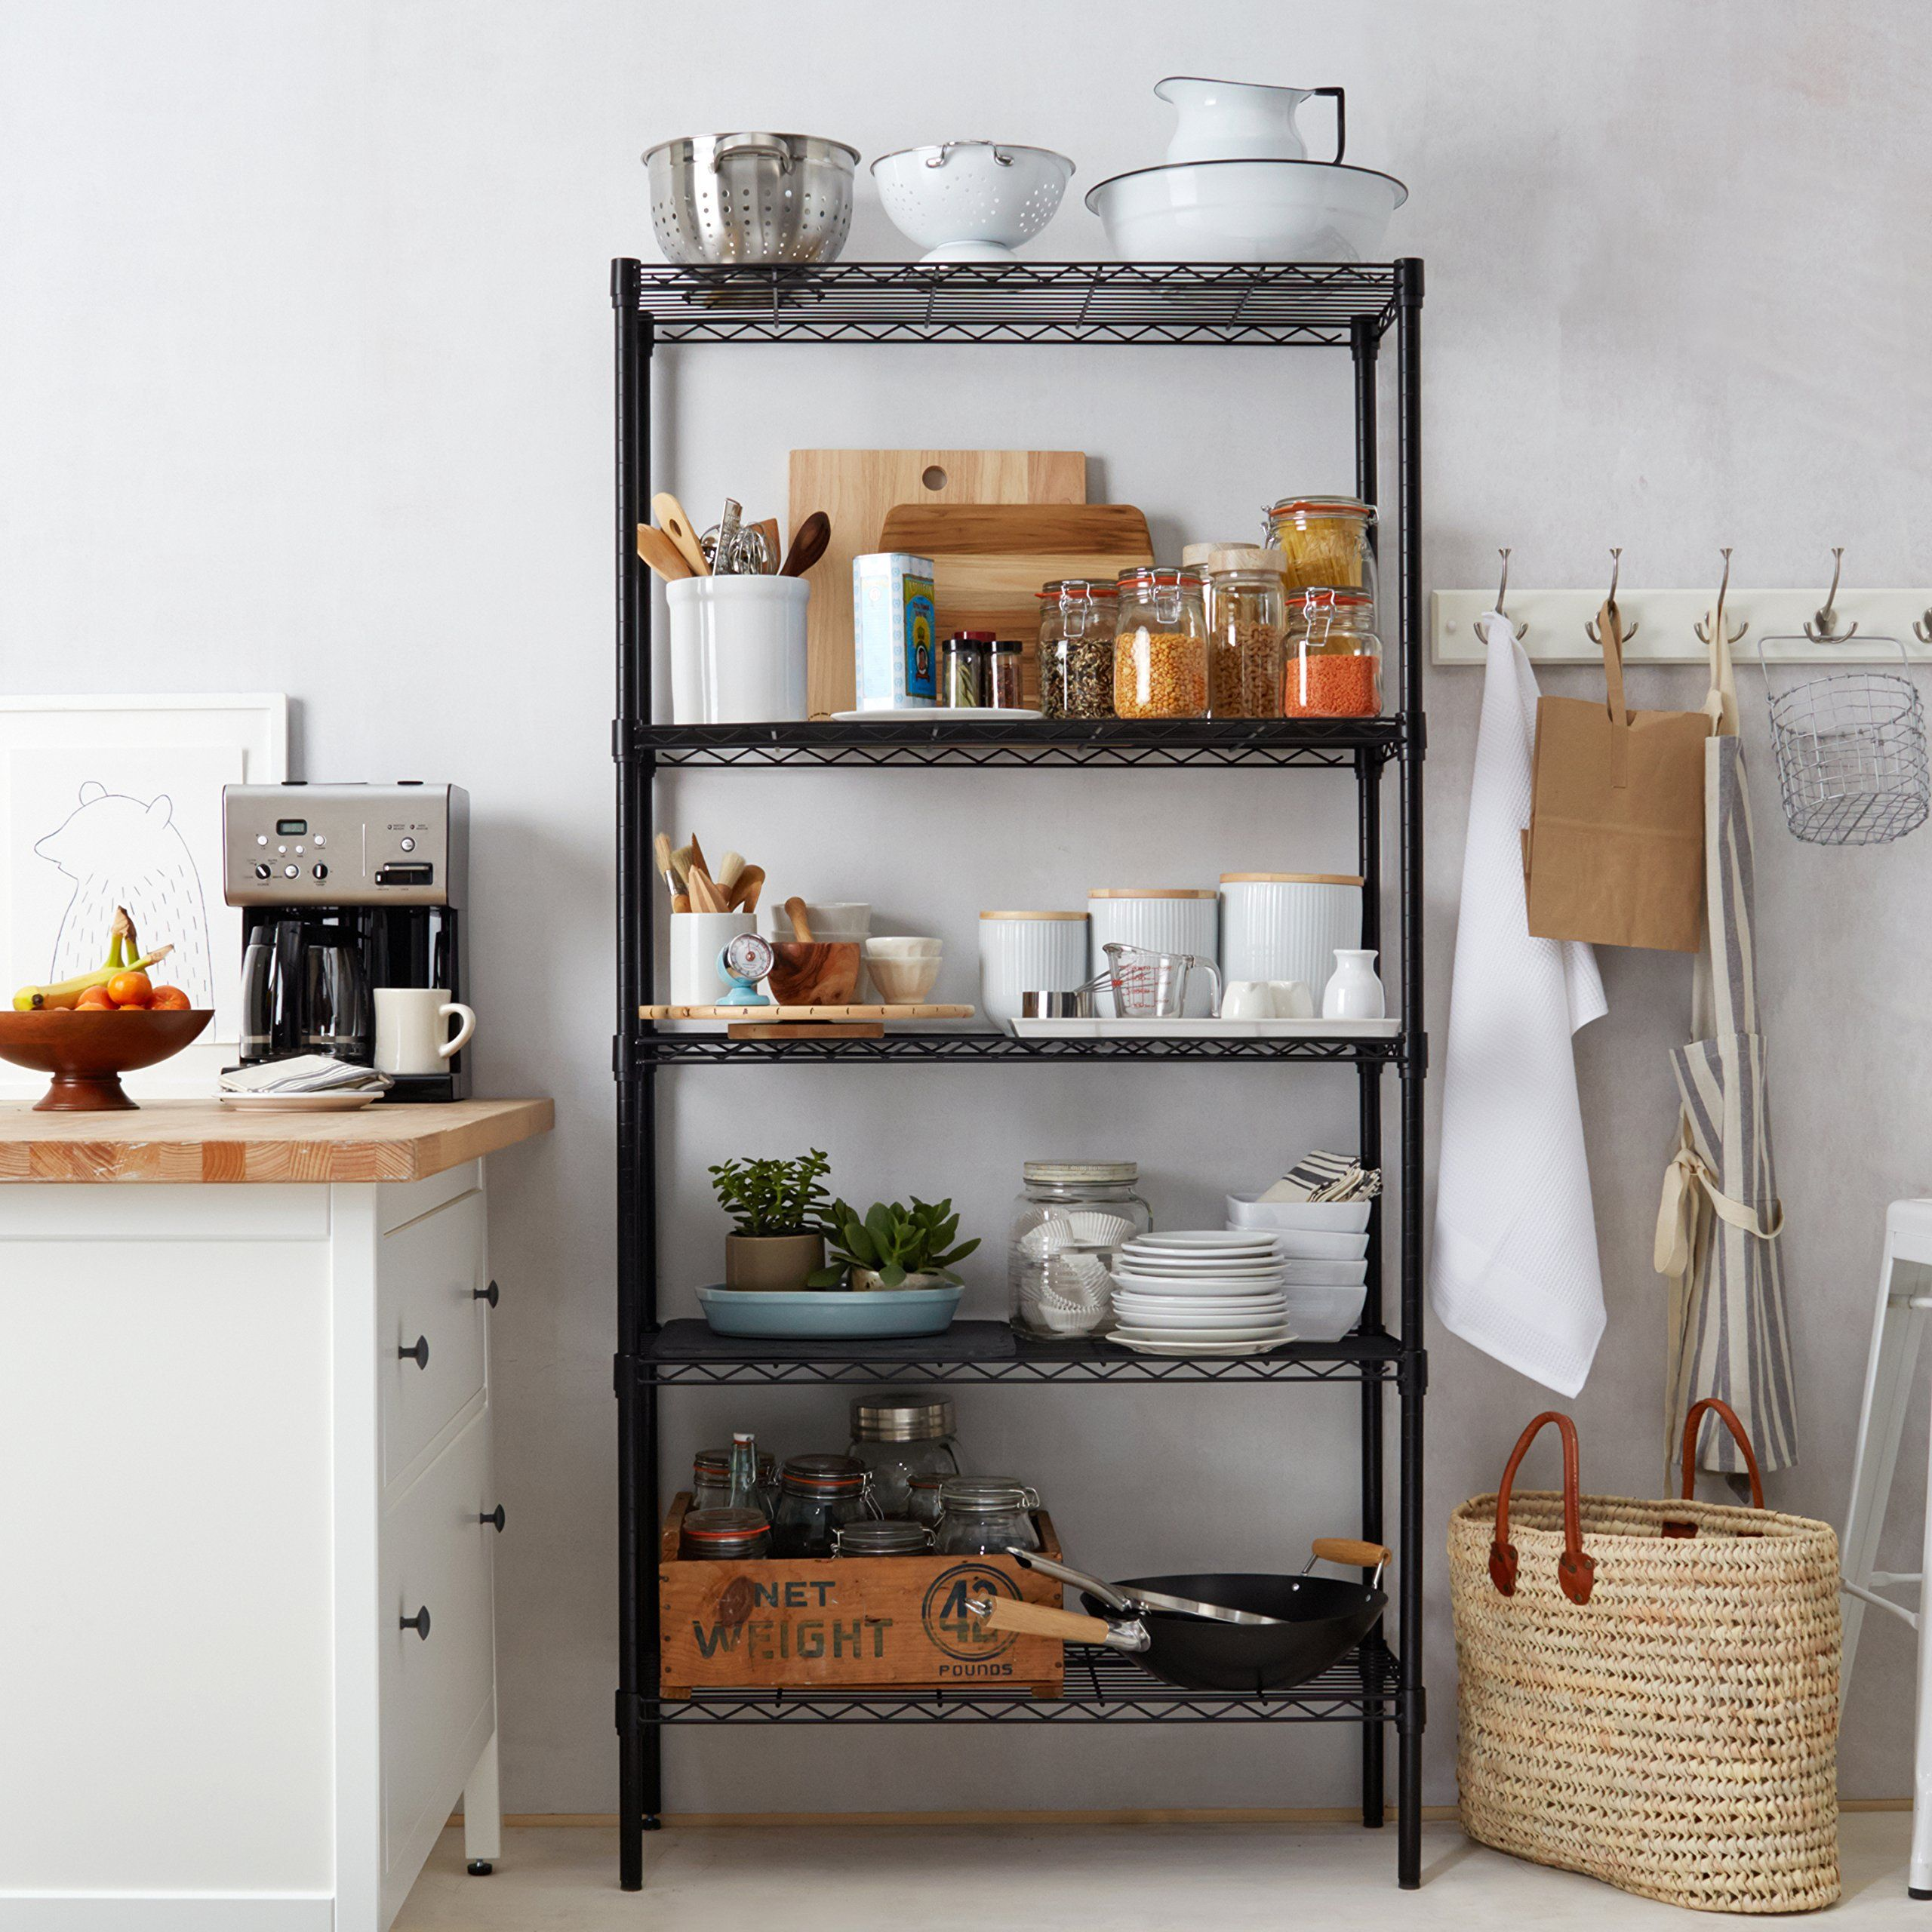 Kitchen Shelf Metal: Cute Idea To Replace White Shelves In Kitchen: Amazon.com